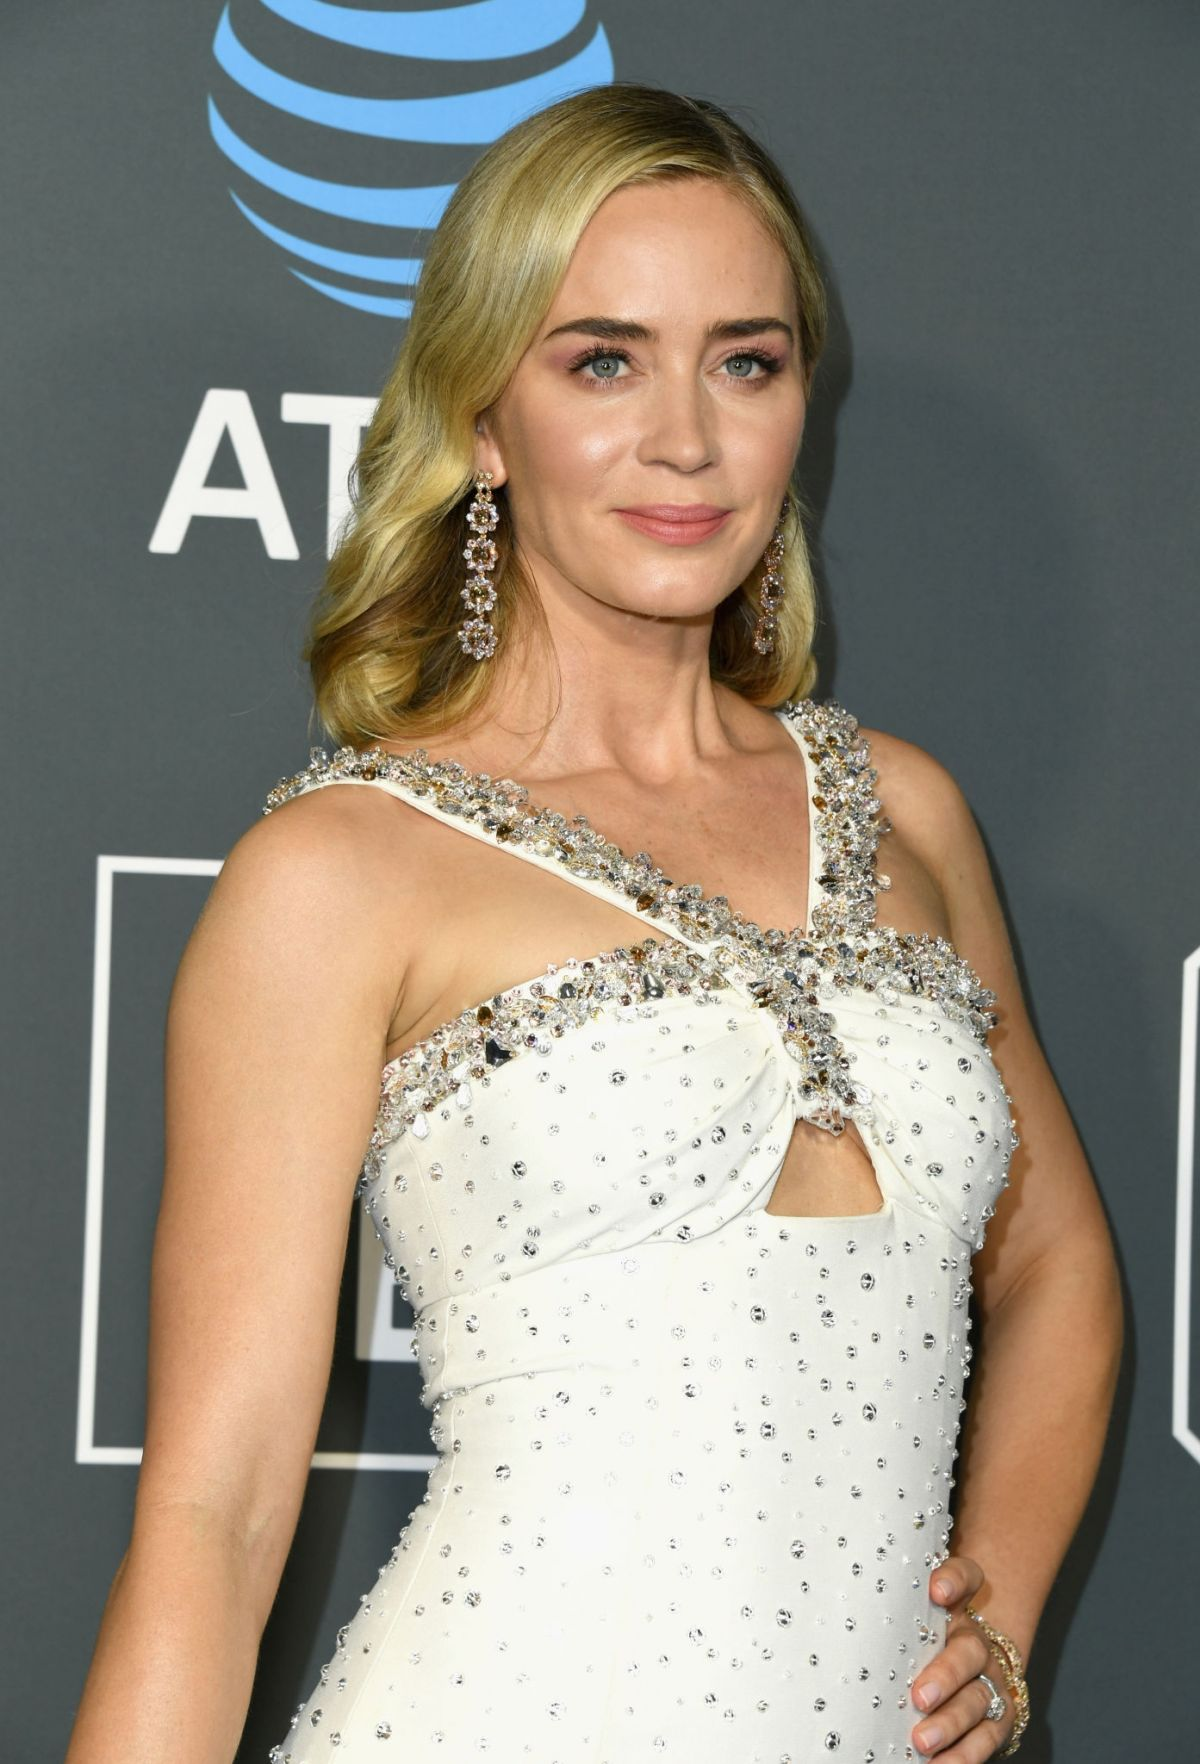 Emily Blunt starrer A Quiet Place 2 to now release on April 23, 2021 | BollywoodTOTA